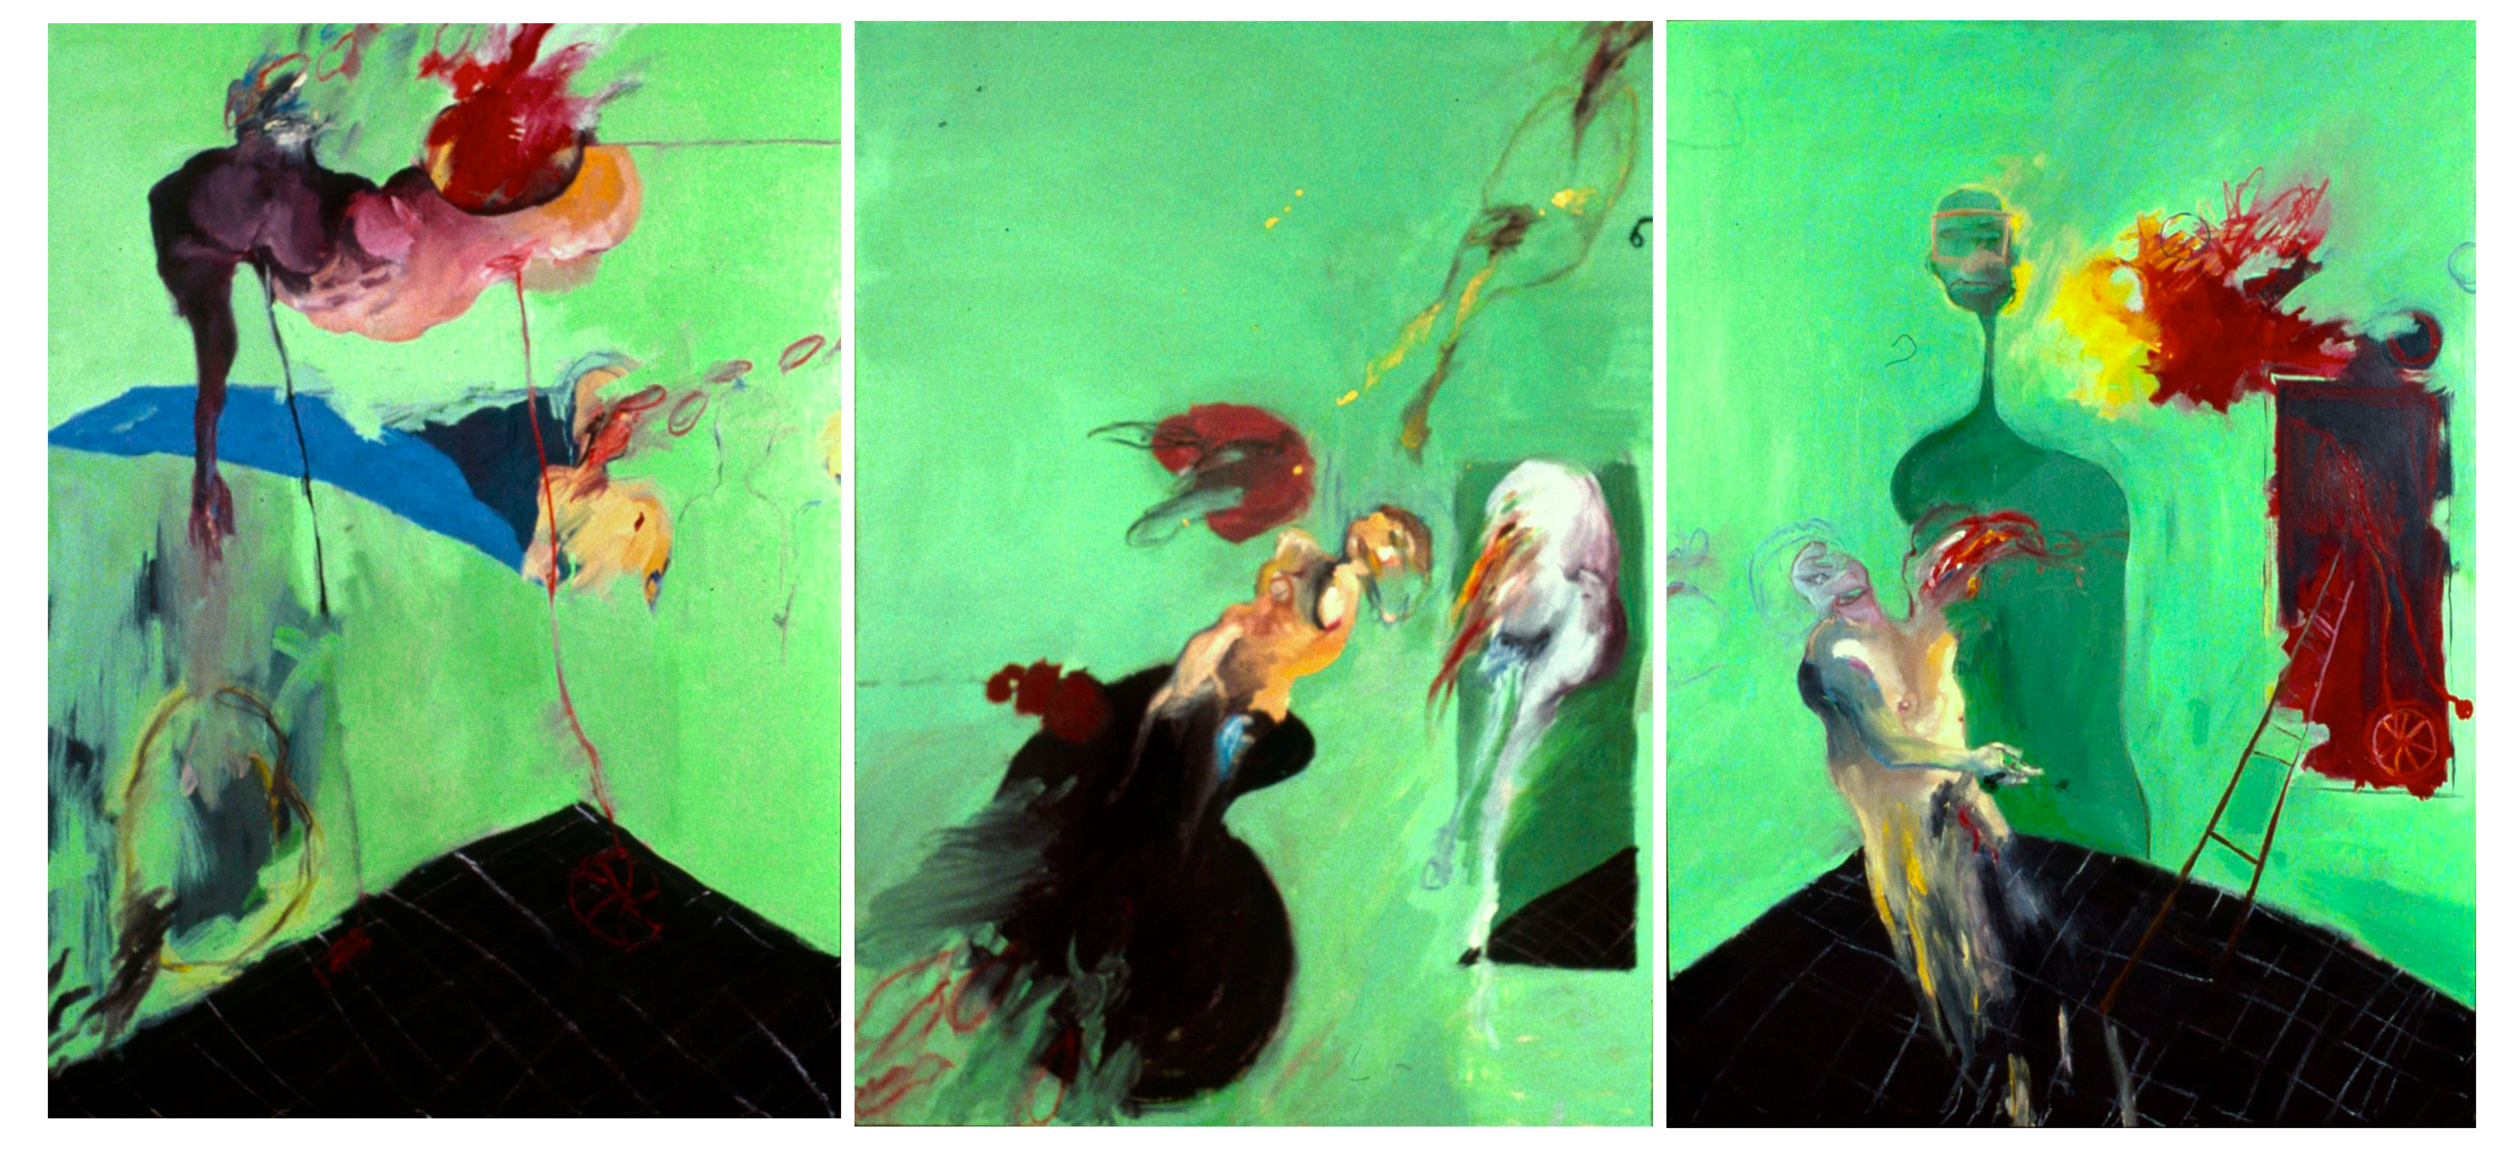 Triptych of '97 - Three figures in a hospital